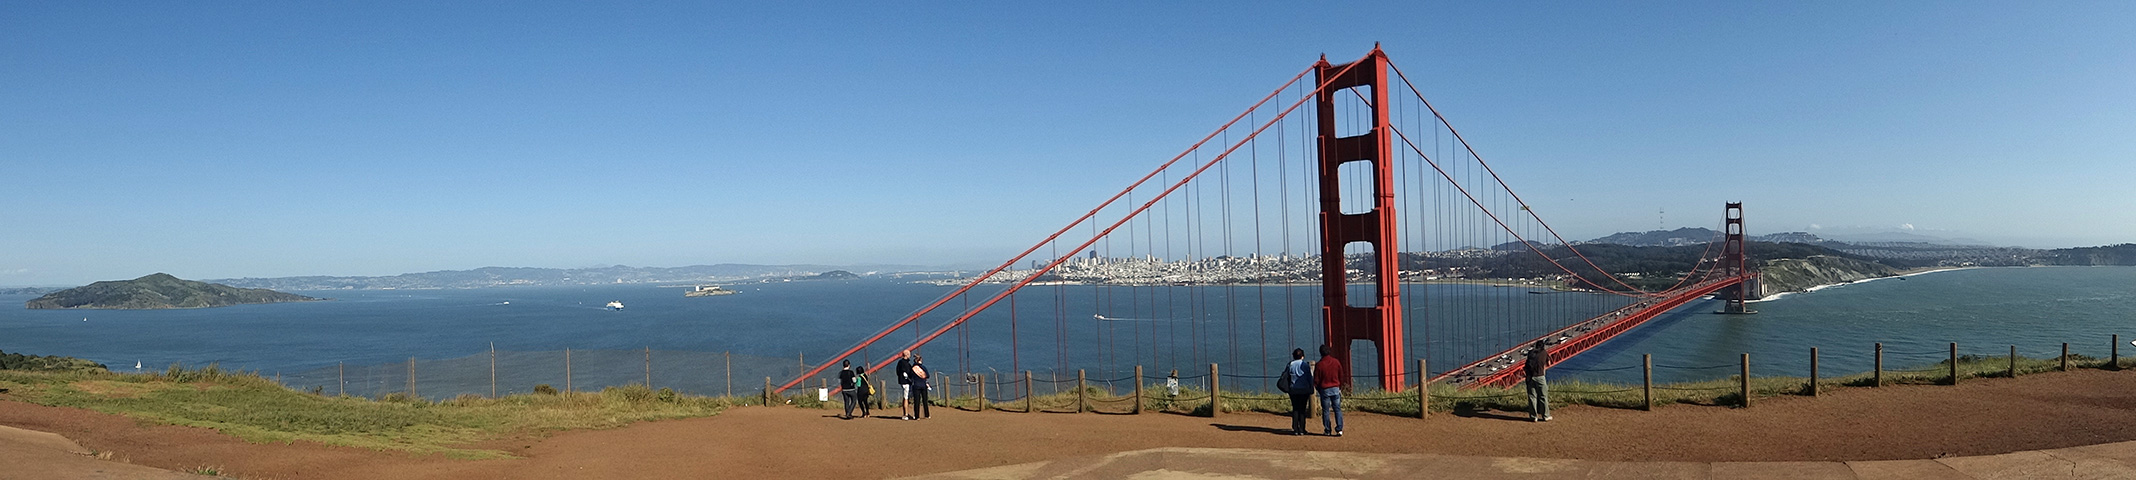 Golden Gate Bridge のパノラマ